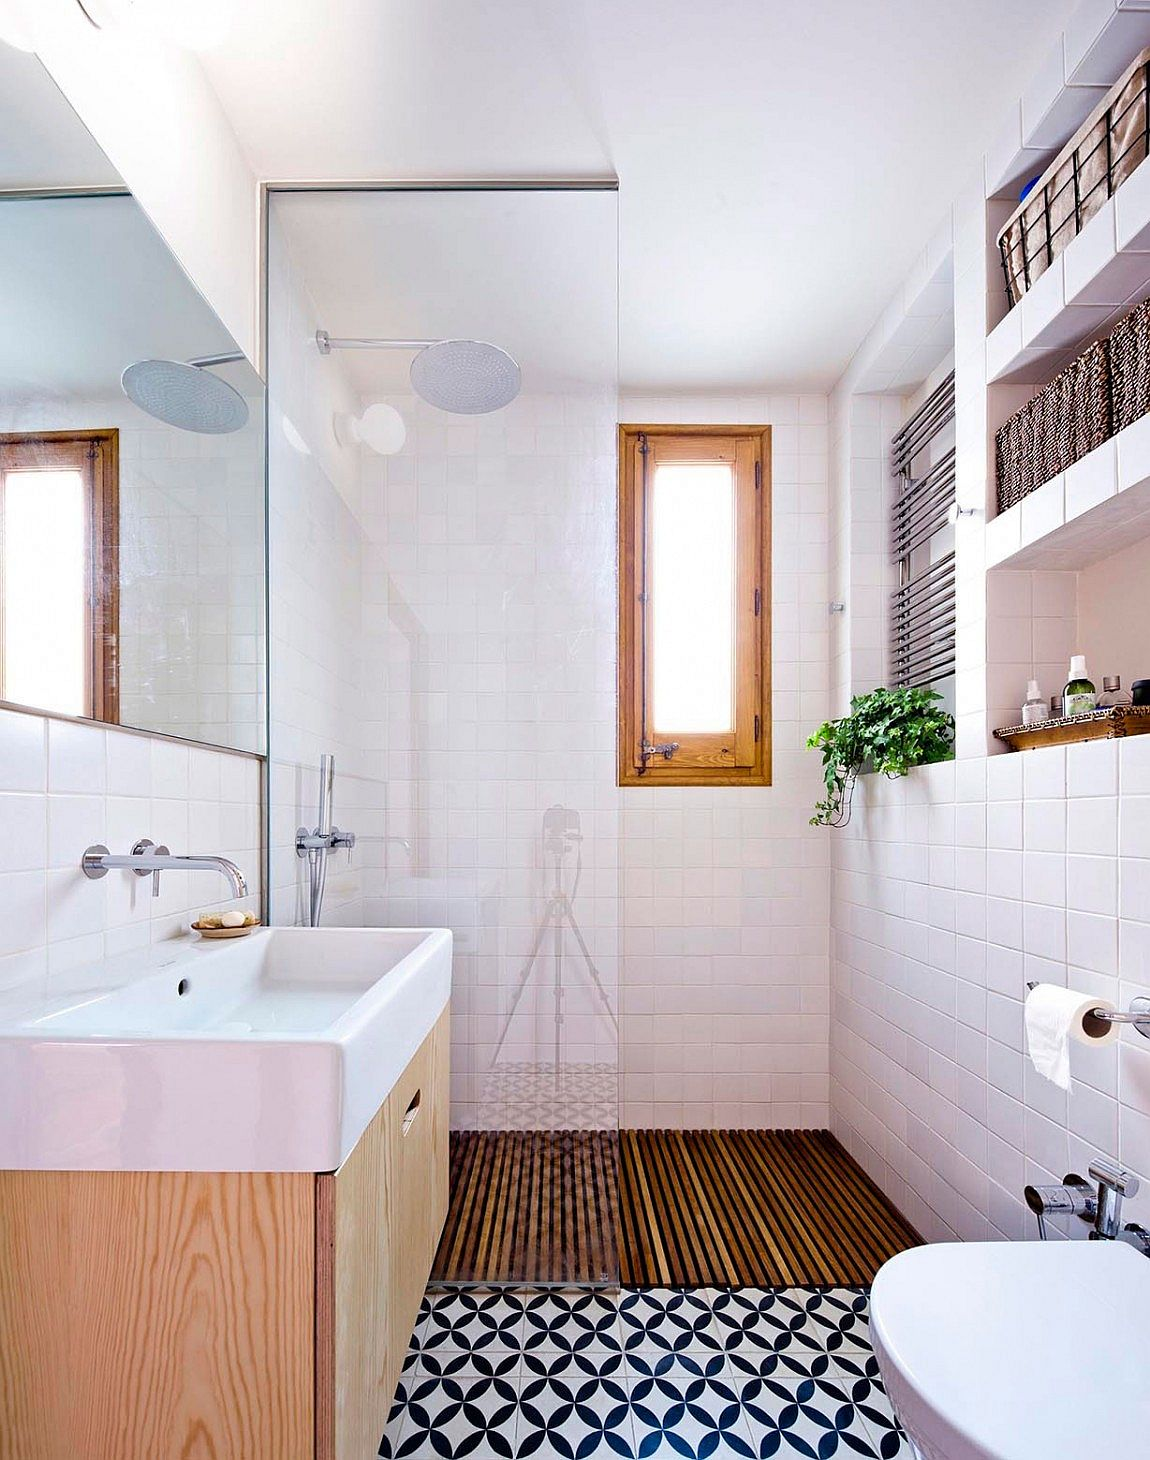 Tiny shower area and bathroom of the small apartment in Barcelona